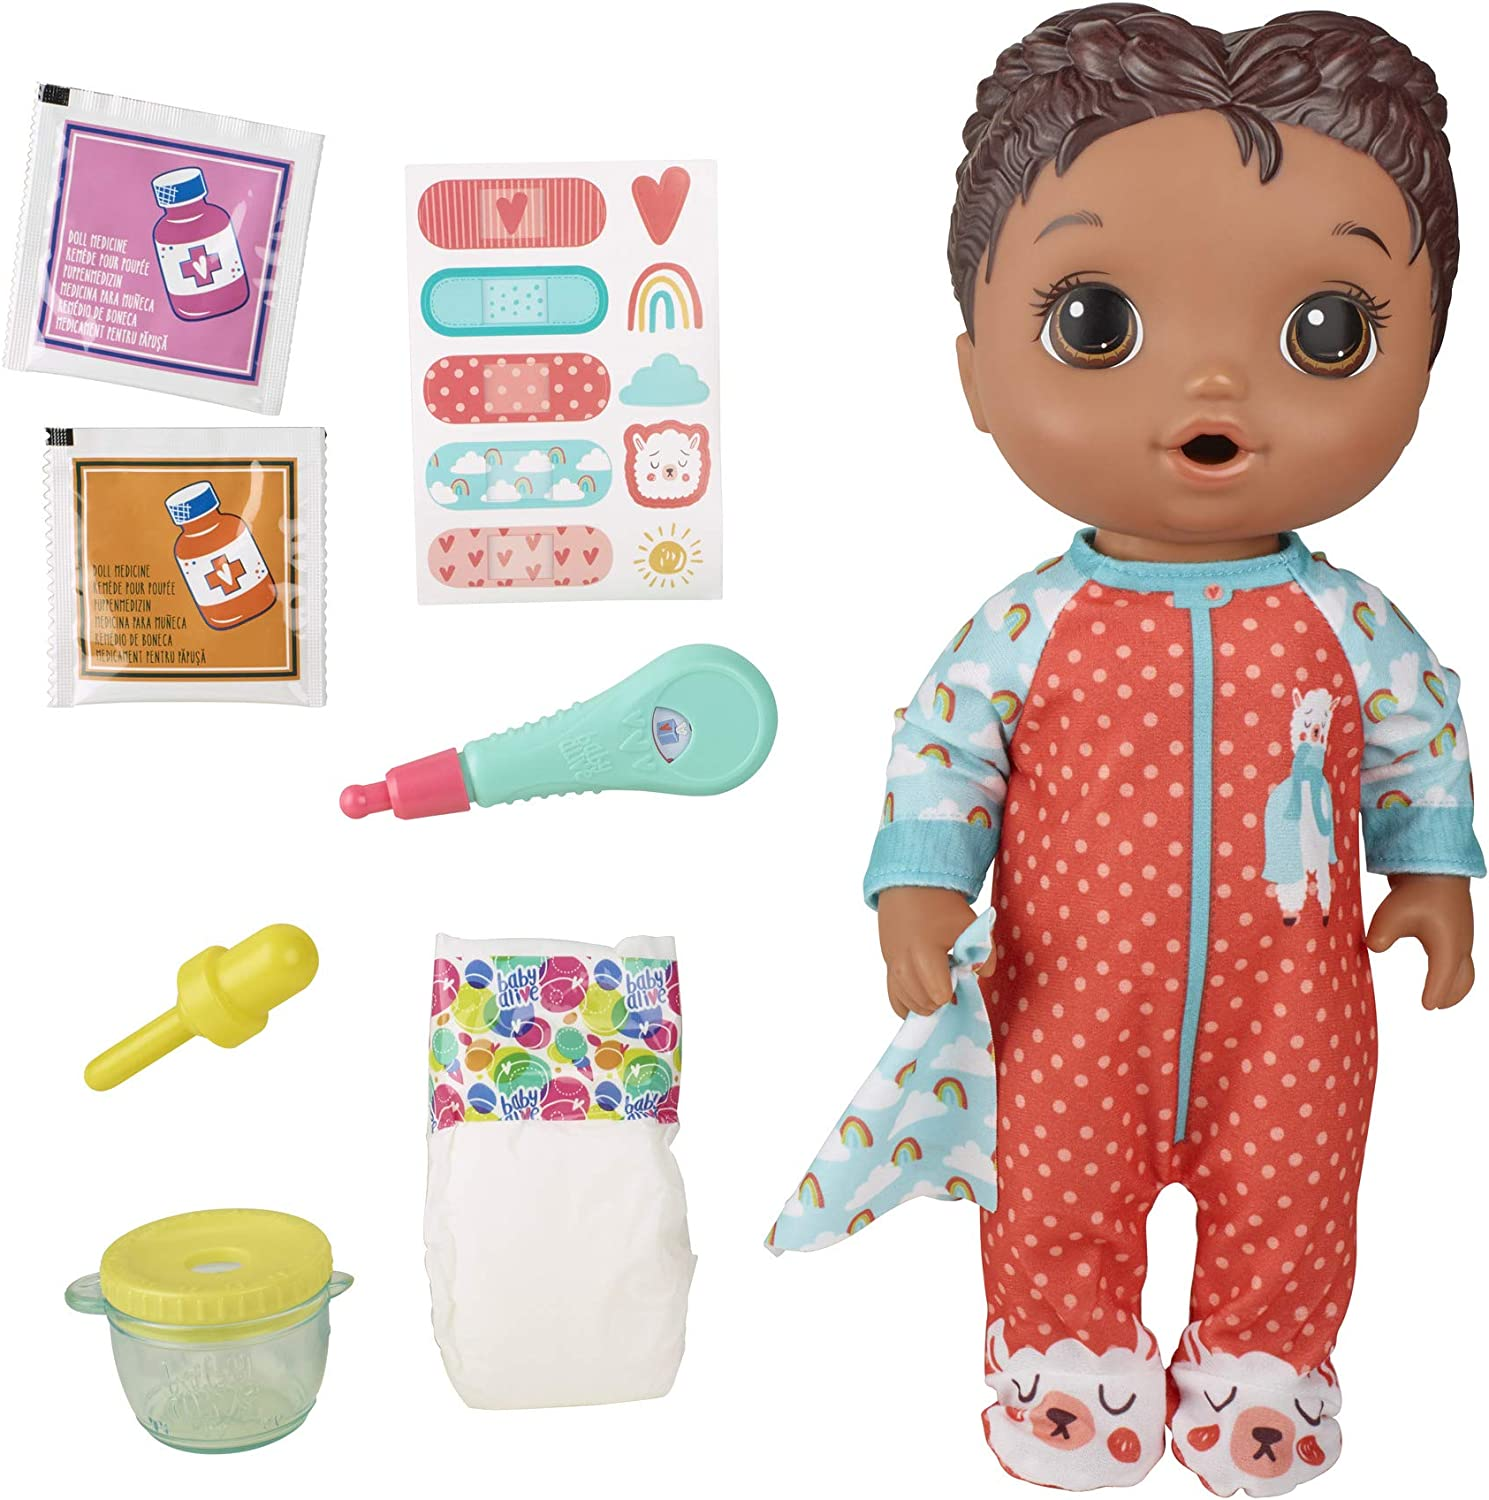 Baby Alive Mix My Medicine Baby Doll, Llama Pyjamas, Drinks and Wets, Doctor Accessories, Black Hair Toy for Children Aged 3 and Up